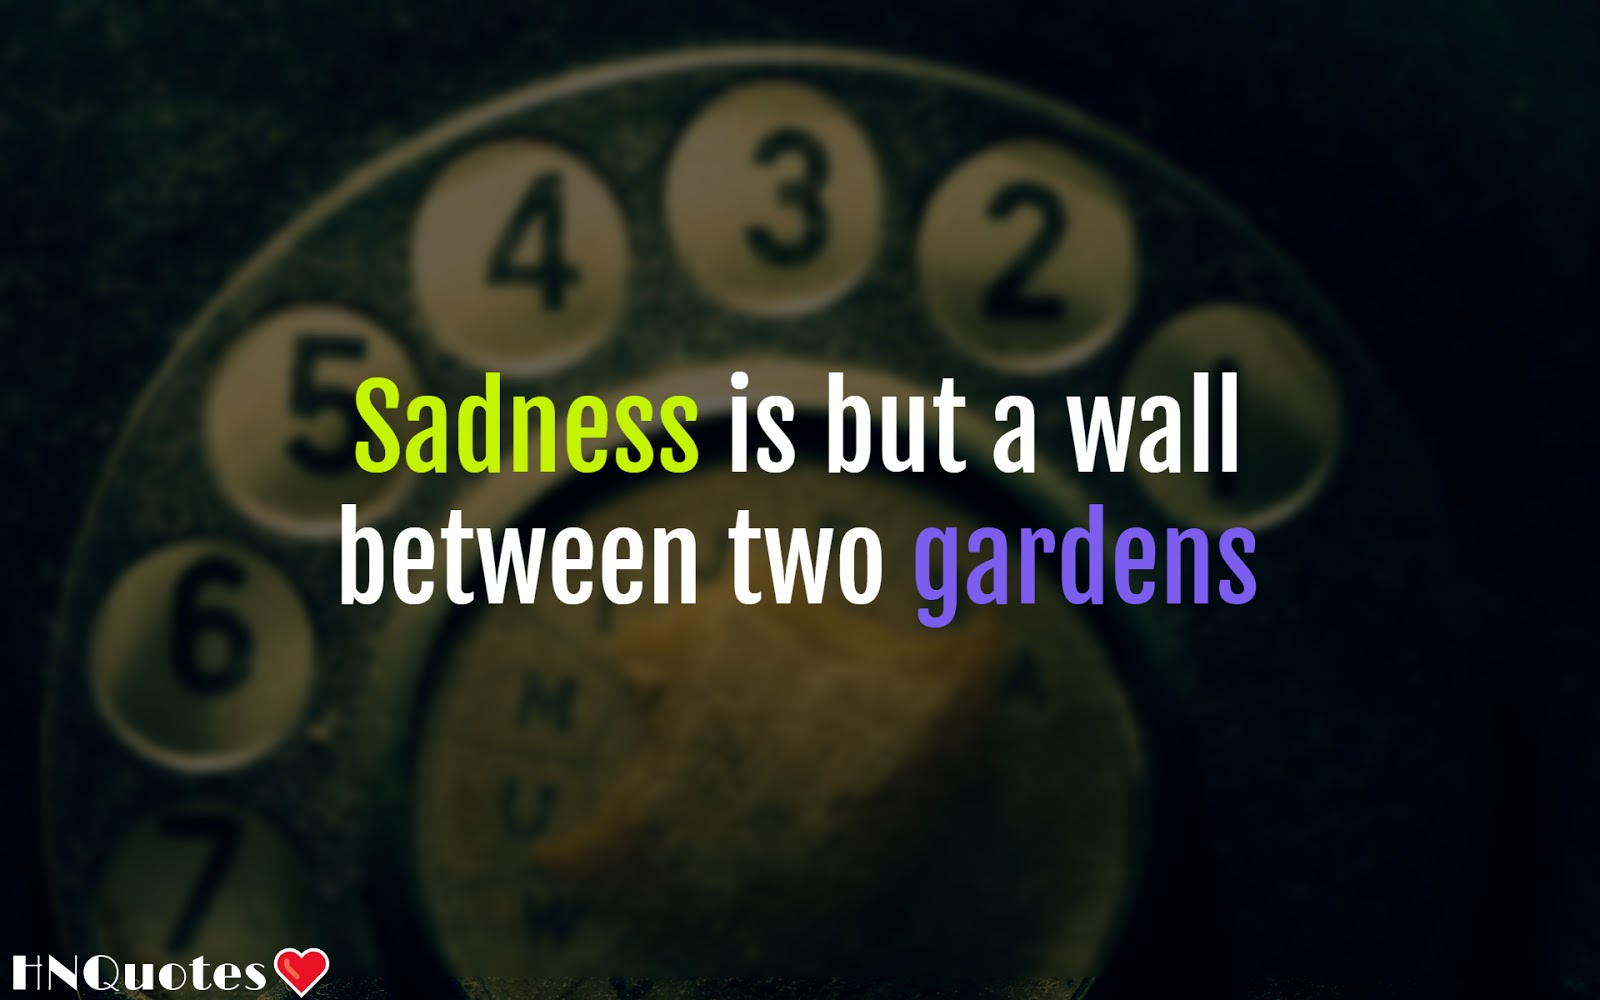 Sad-&-Emotional-Quotes-on-Life-71-Best-Emotional-Quotes[HNQuotes]